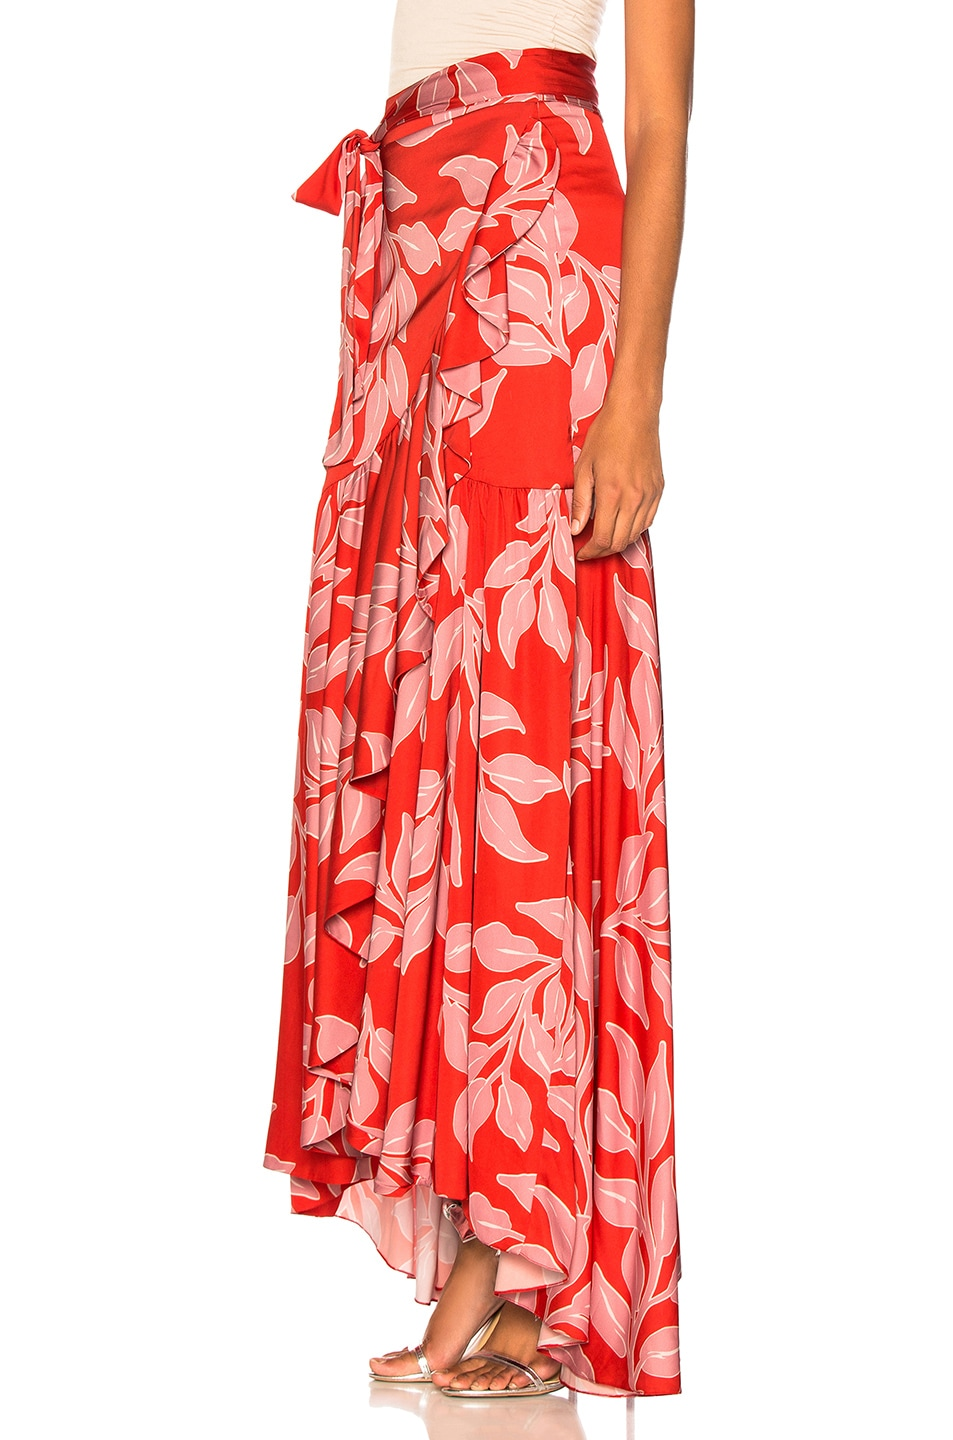 Image 3 of PatBo Leaf Print Wrap Skirt in Hot Pink